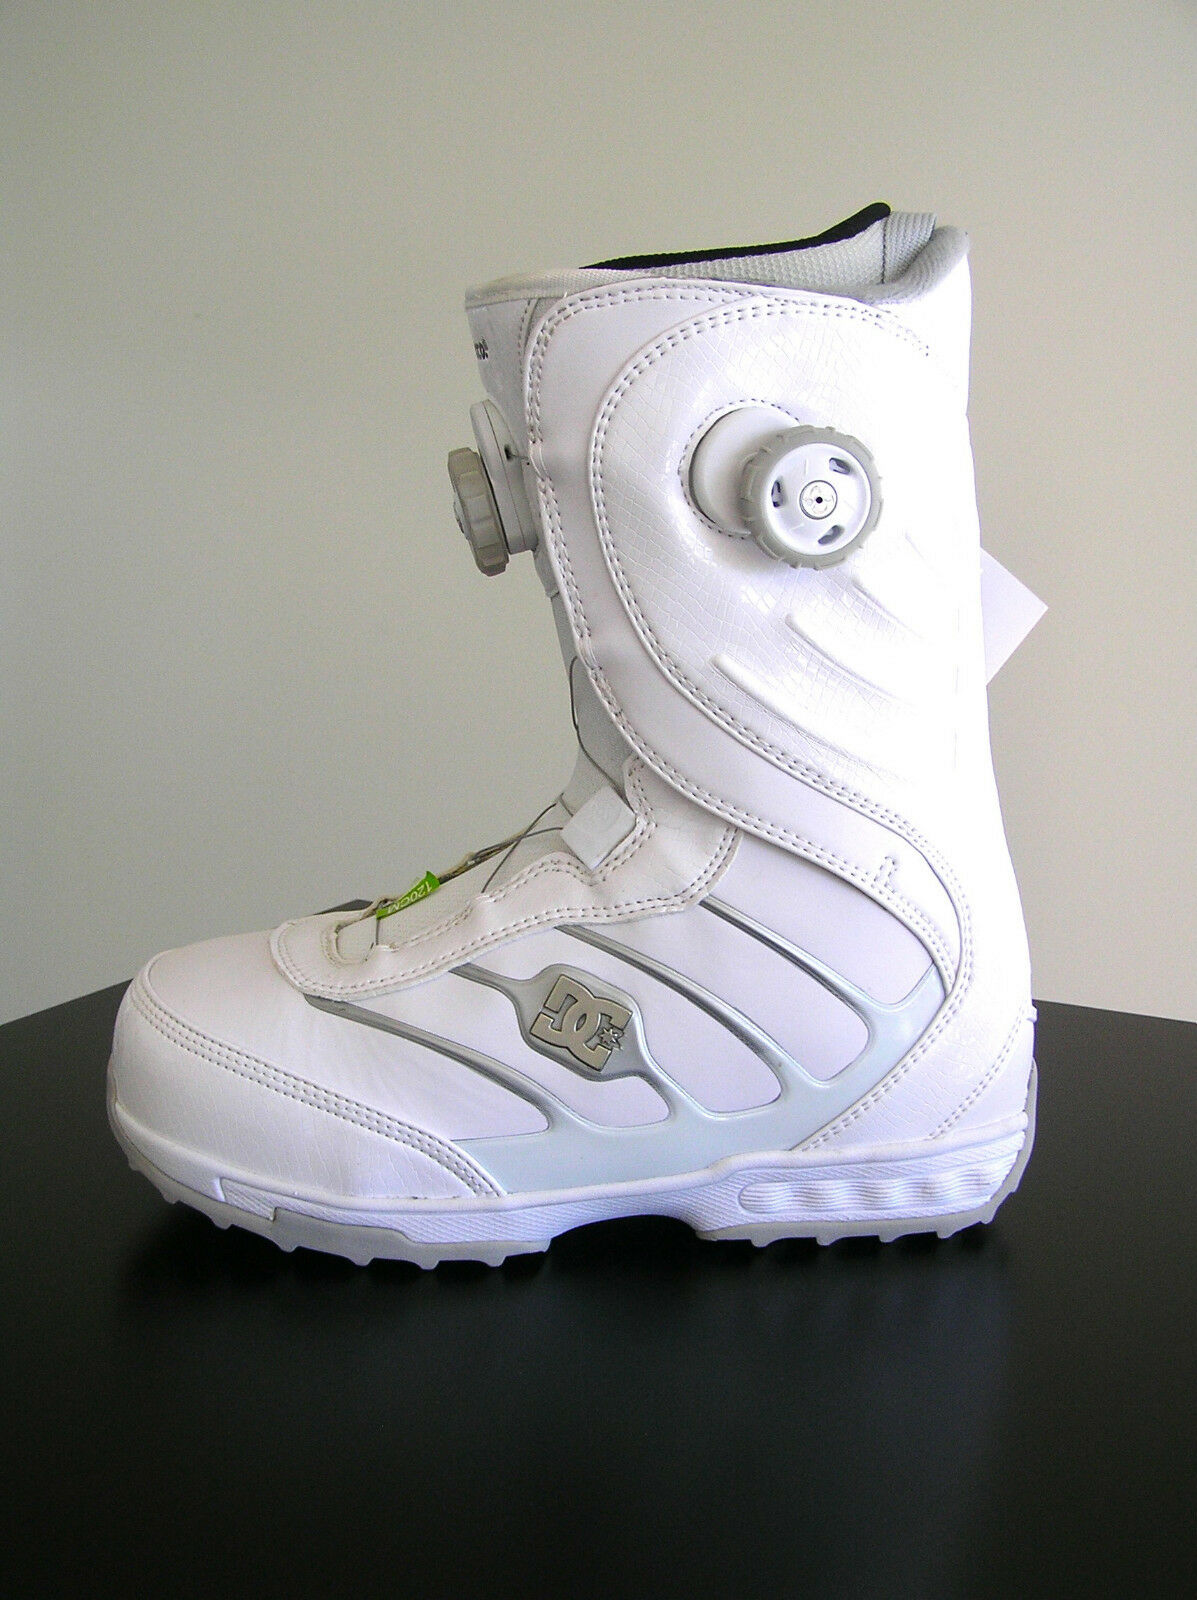 Dc Snowboard Boots Mora Womens Size 9.5 - Recco New In Box (21) Rare